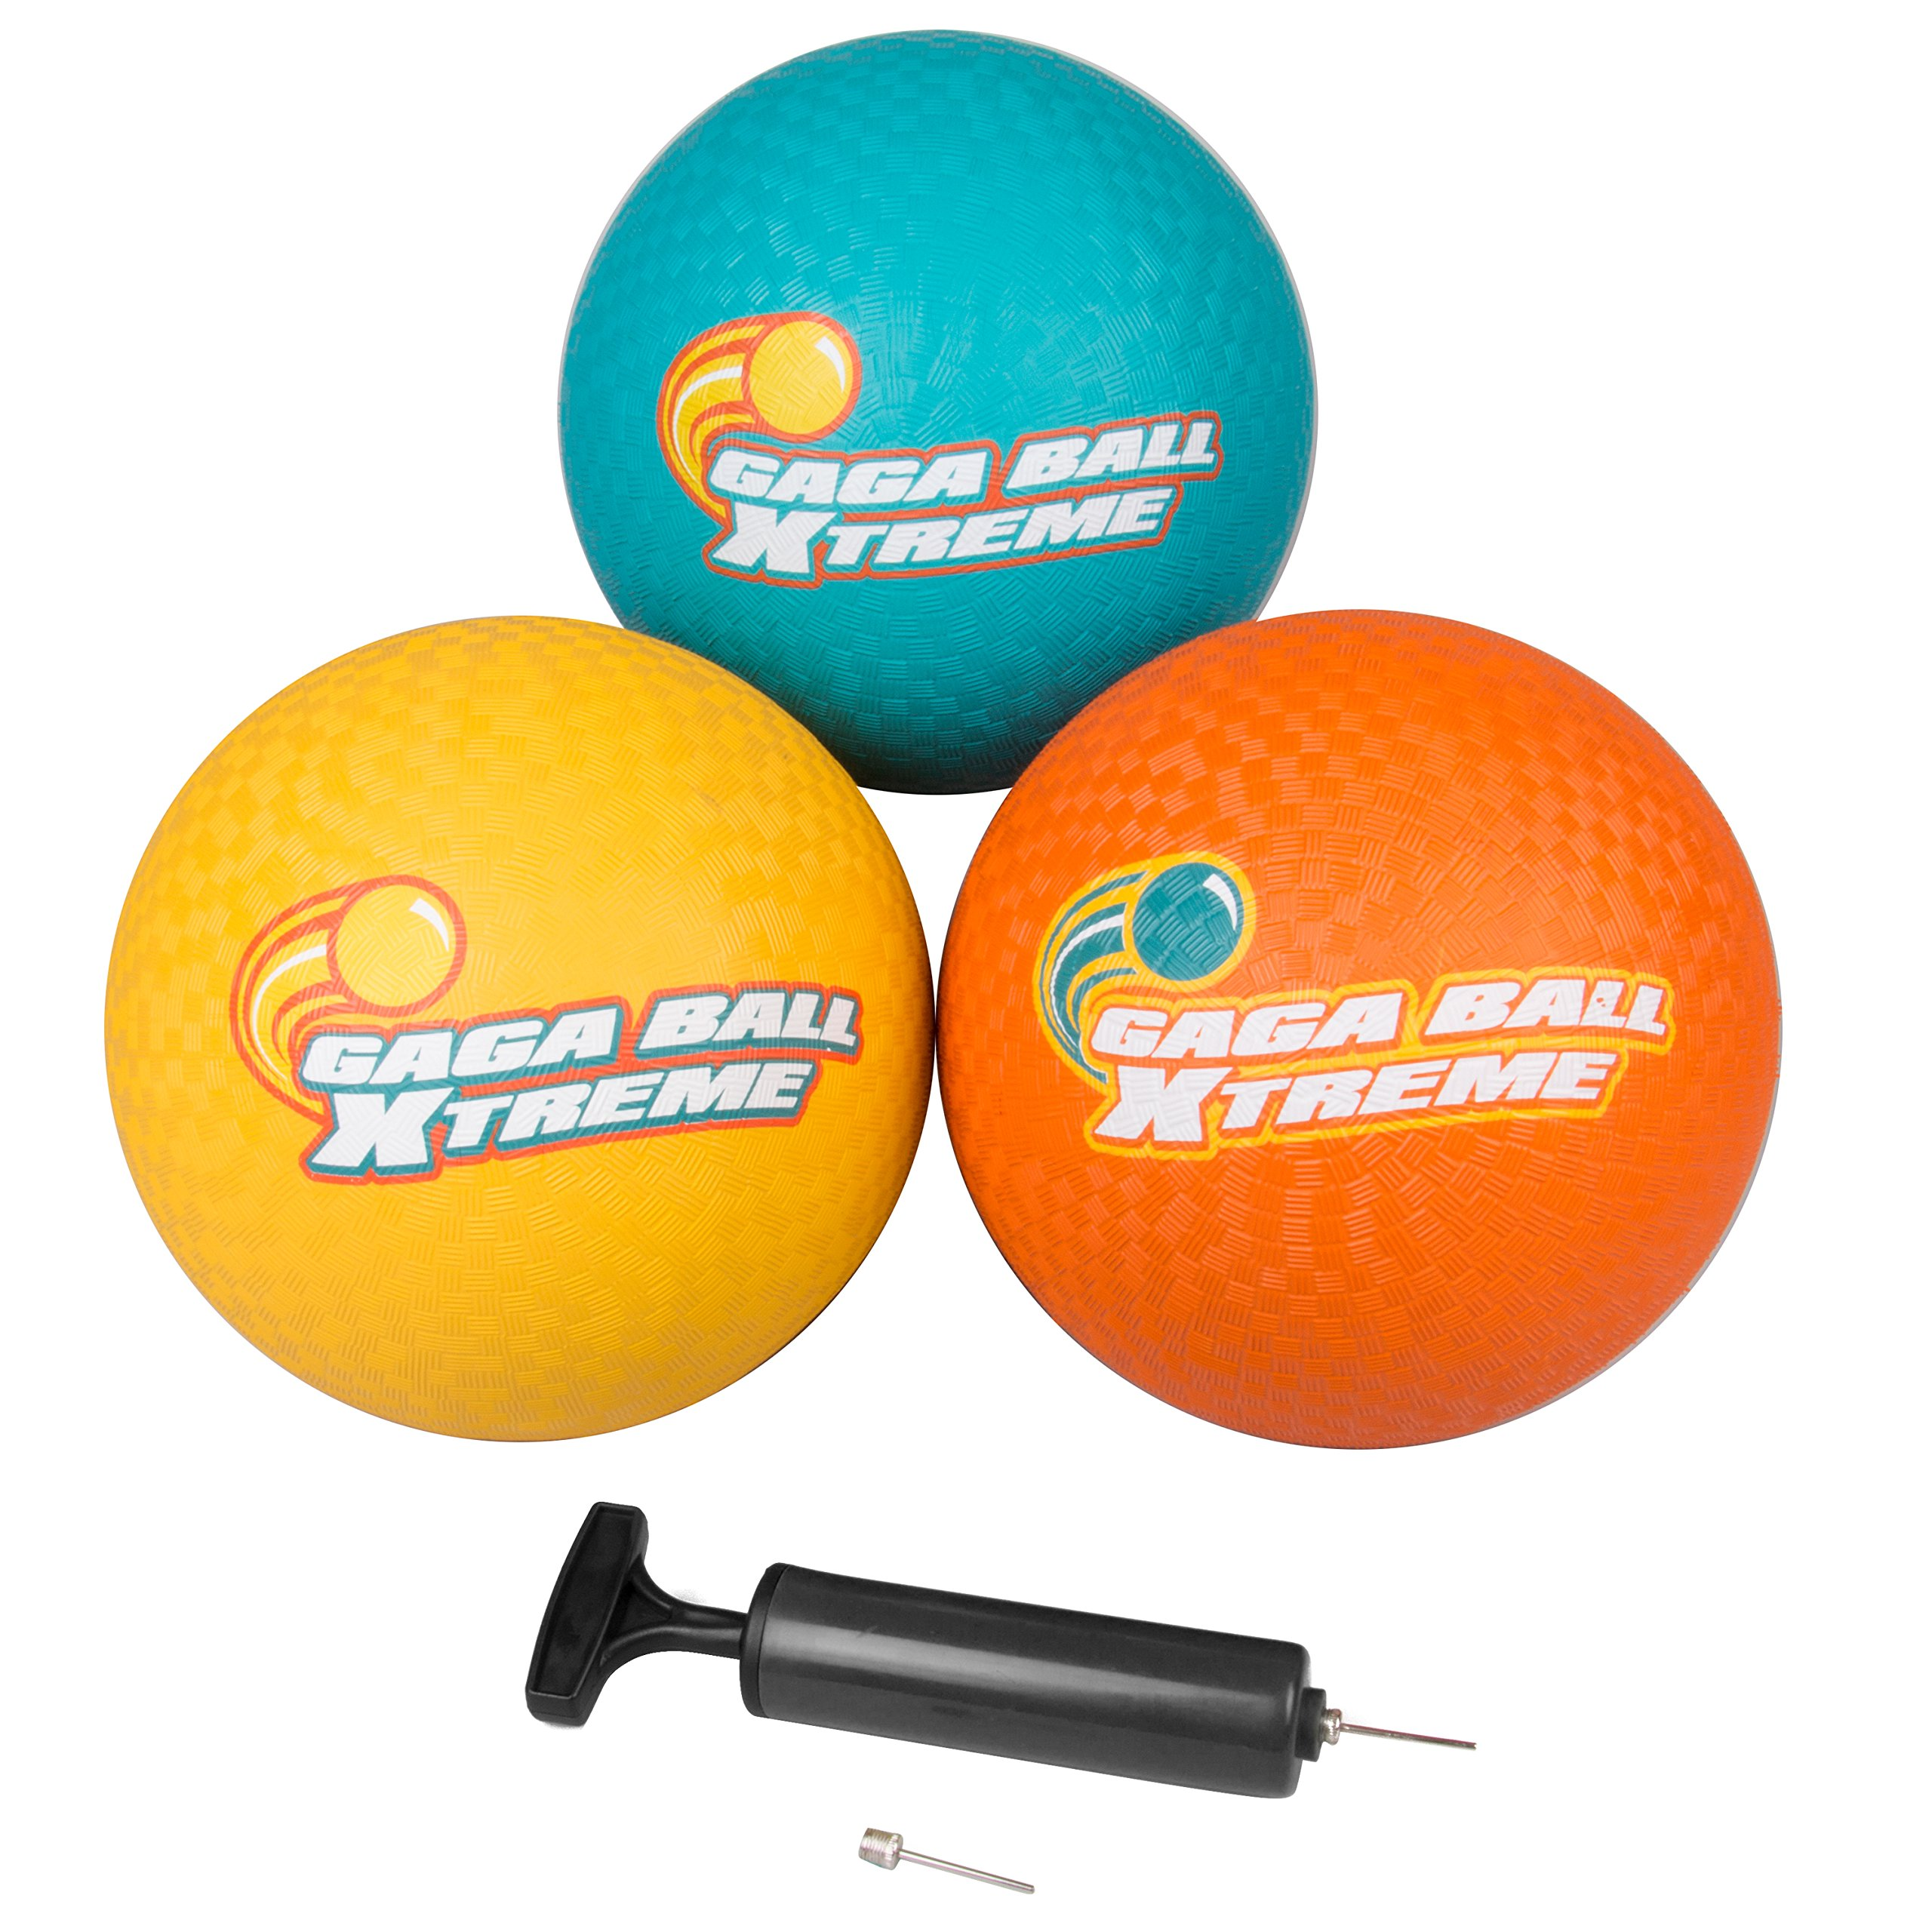 SCS Direct Gaga Playground Balls 3pk (8.5 inches) with Air Pump - Durable Rubber, Lightweight and Great for Dodgeball, Kickball, Gagaball Official Play by SCS Direct